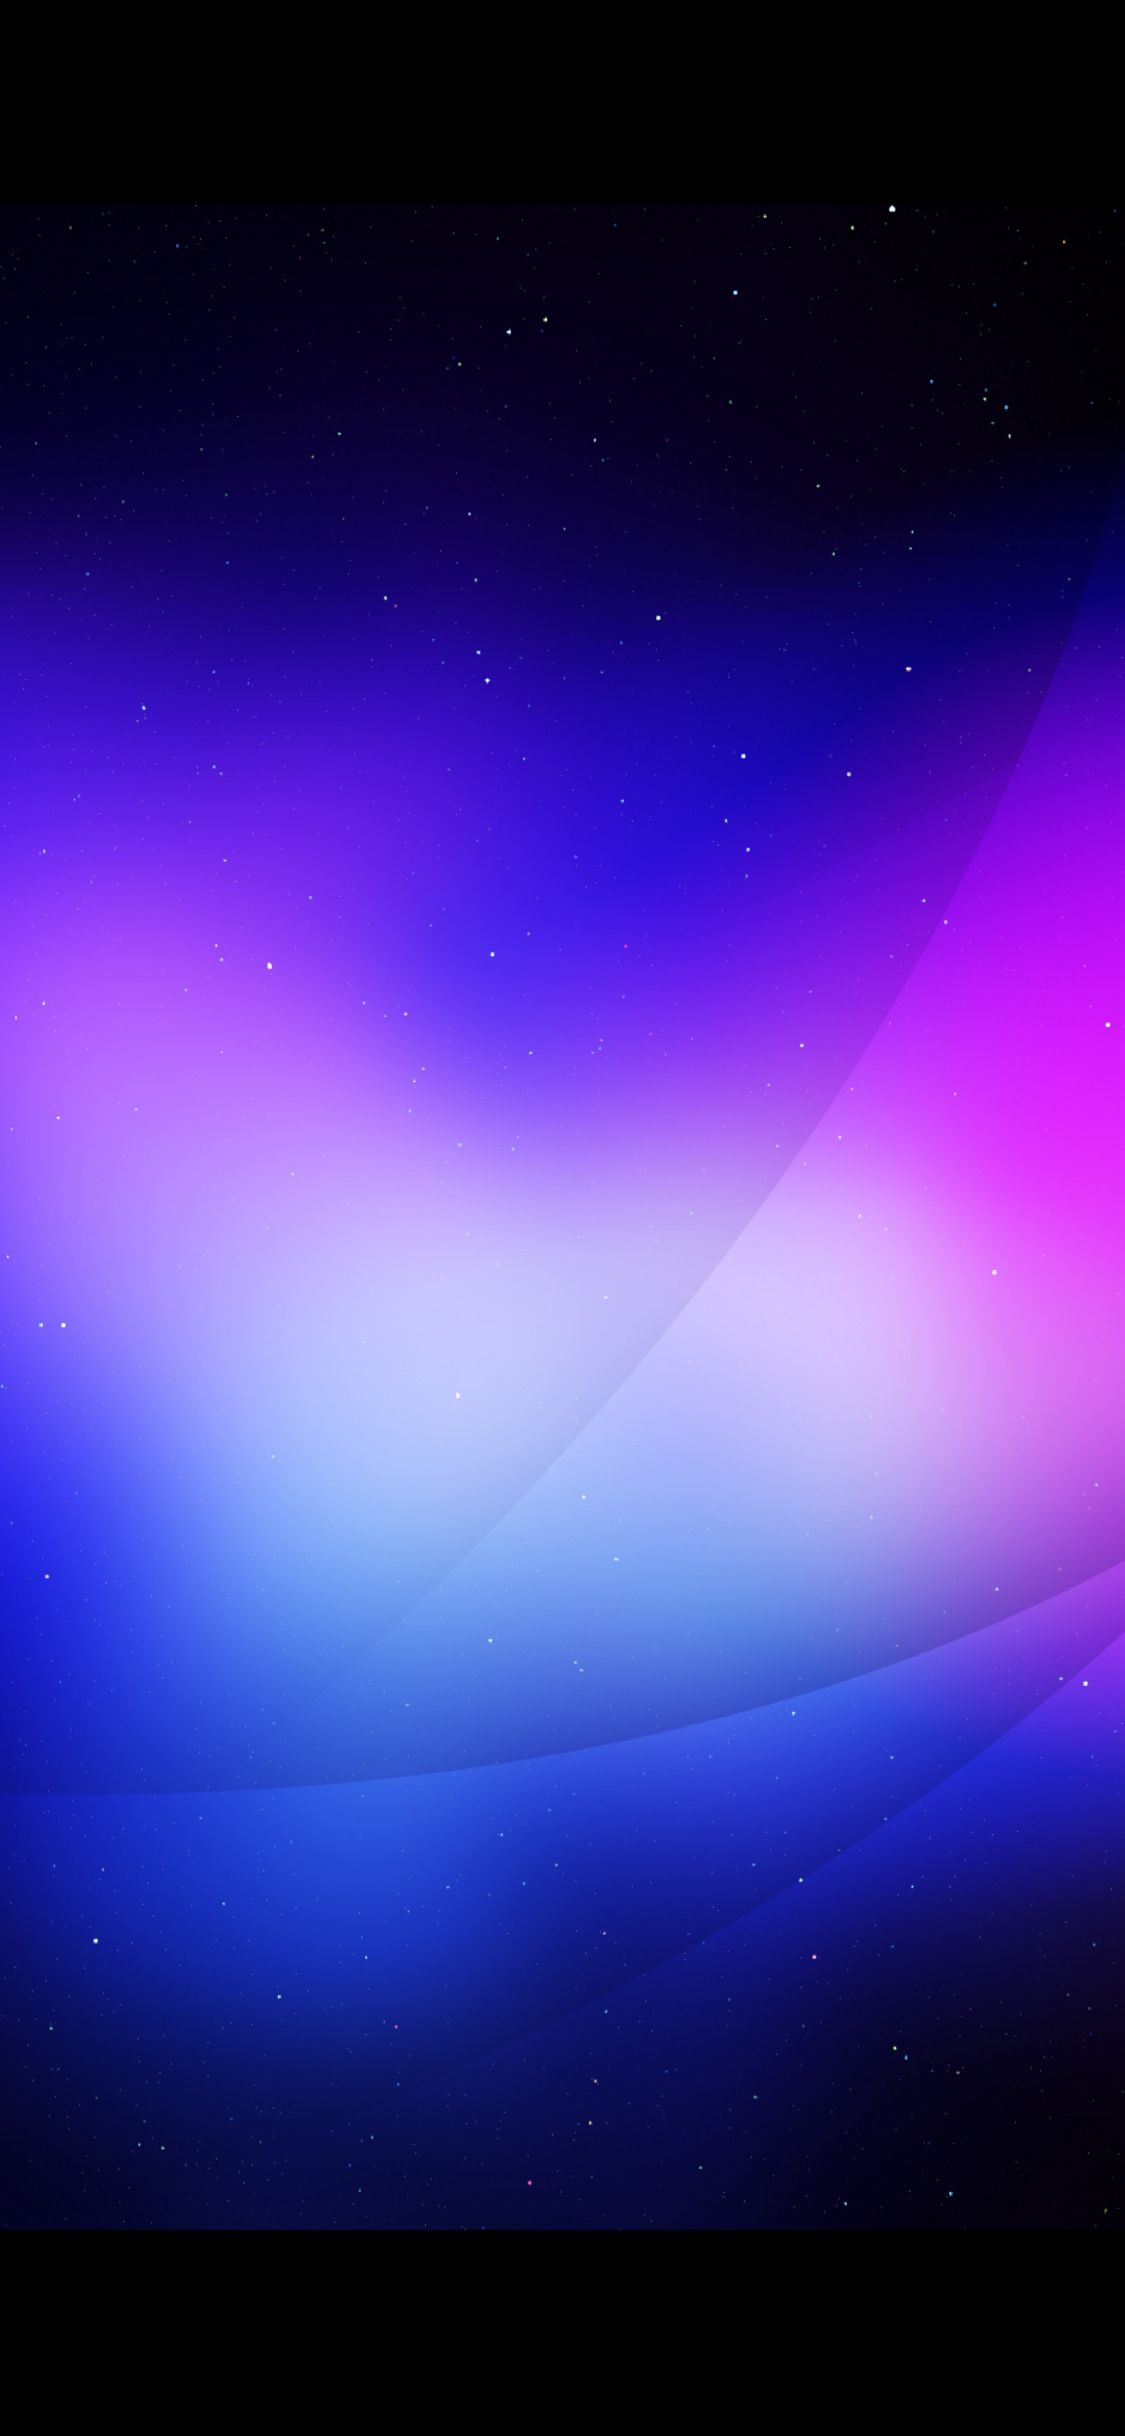 A Starry Night With Blue And Purple Best Iphone Wallpapers Graphic Wallpaper Black Wallpaper